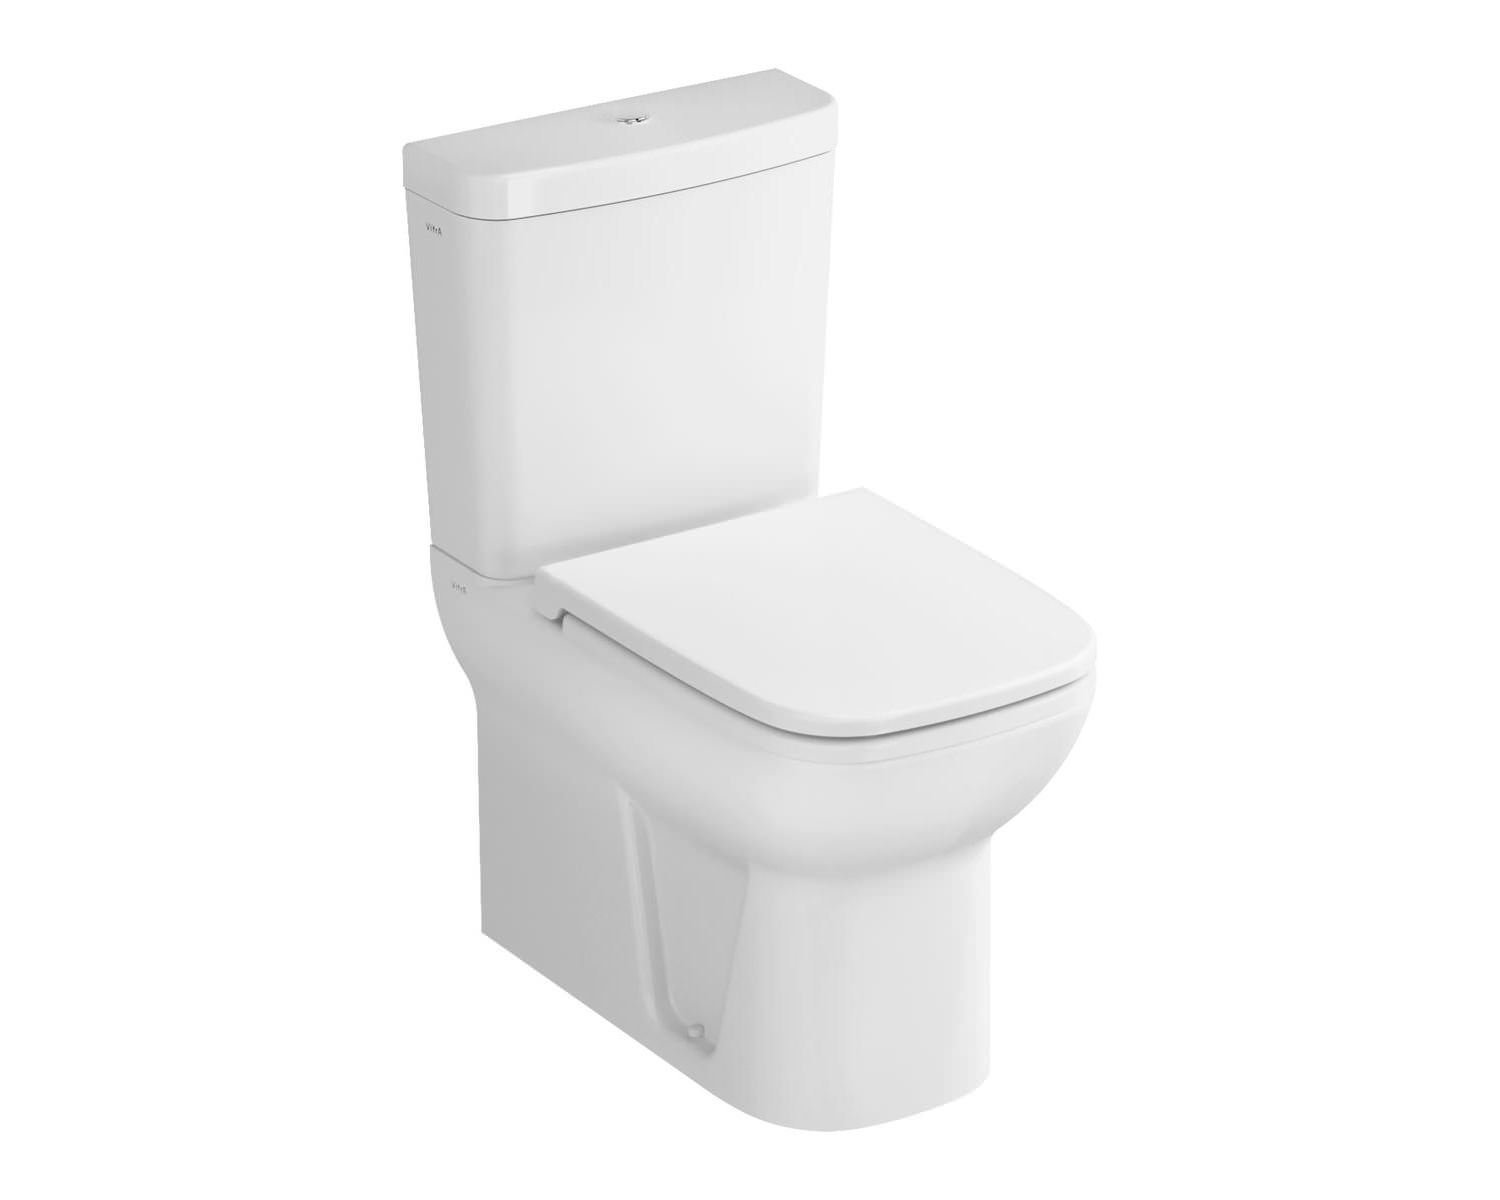 large square toilet seat. VitrA S20 Close Coupled BTW WC With Cistern And Seat  5512L003 0585